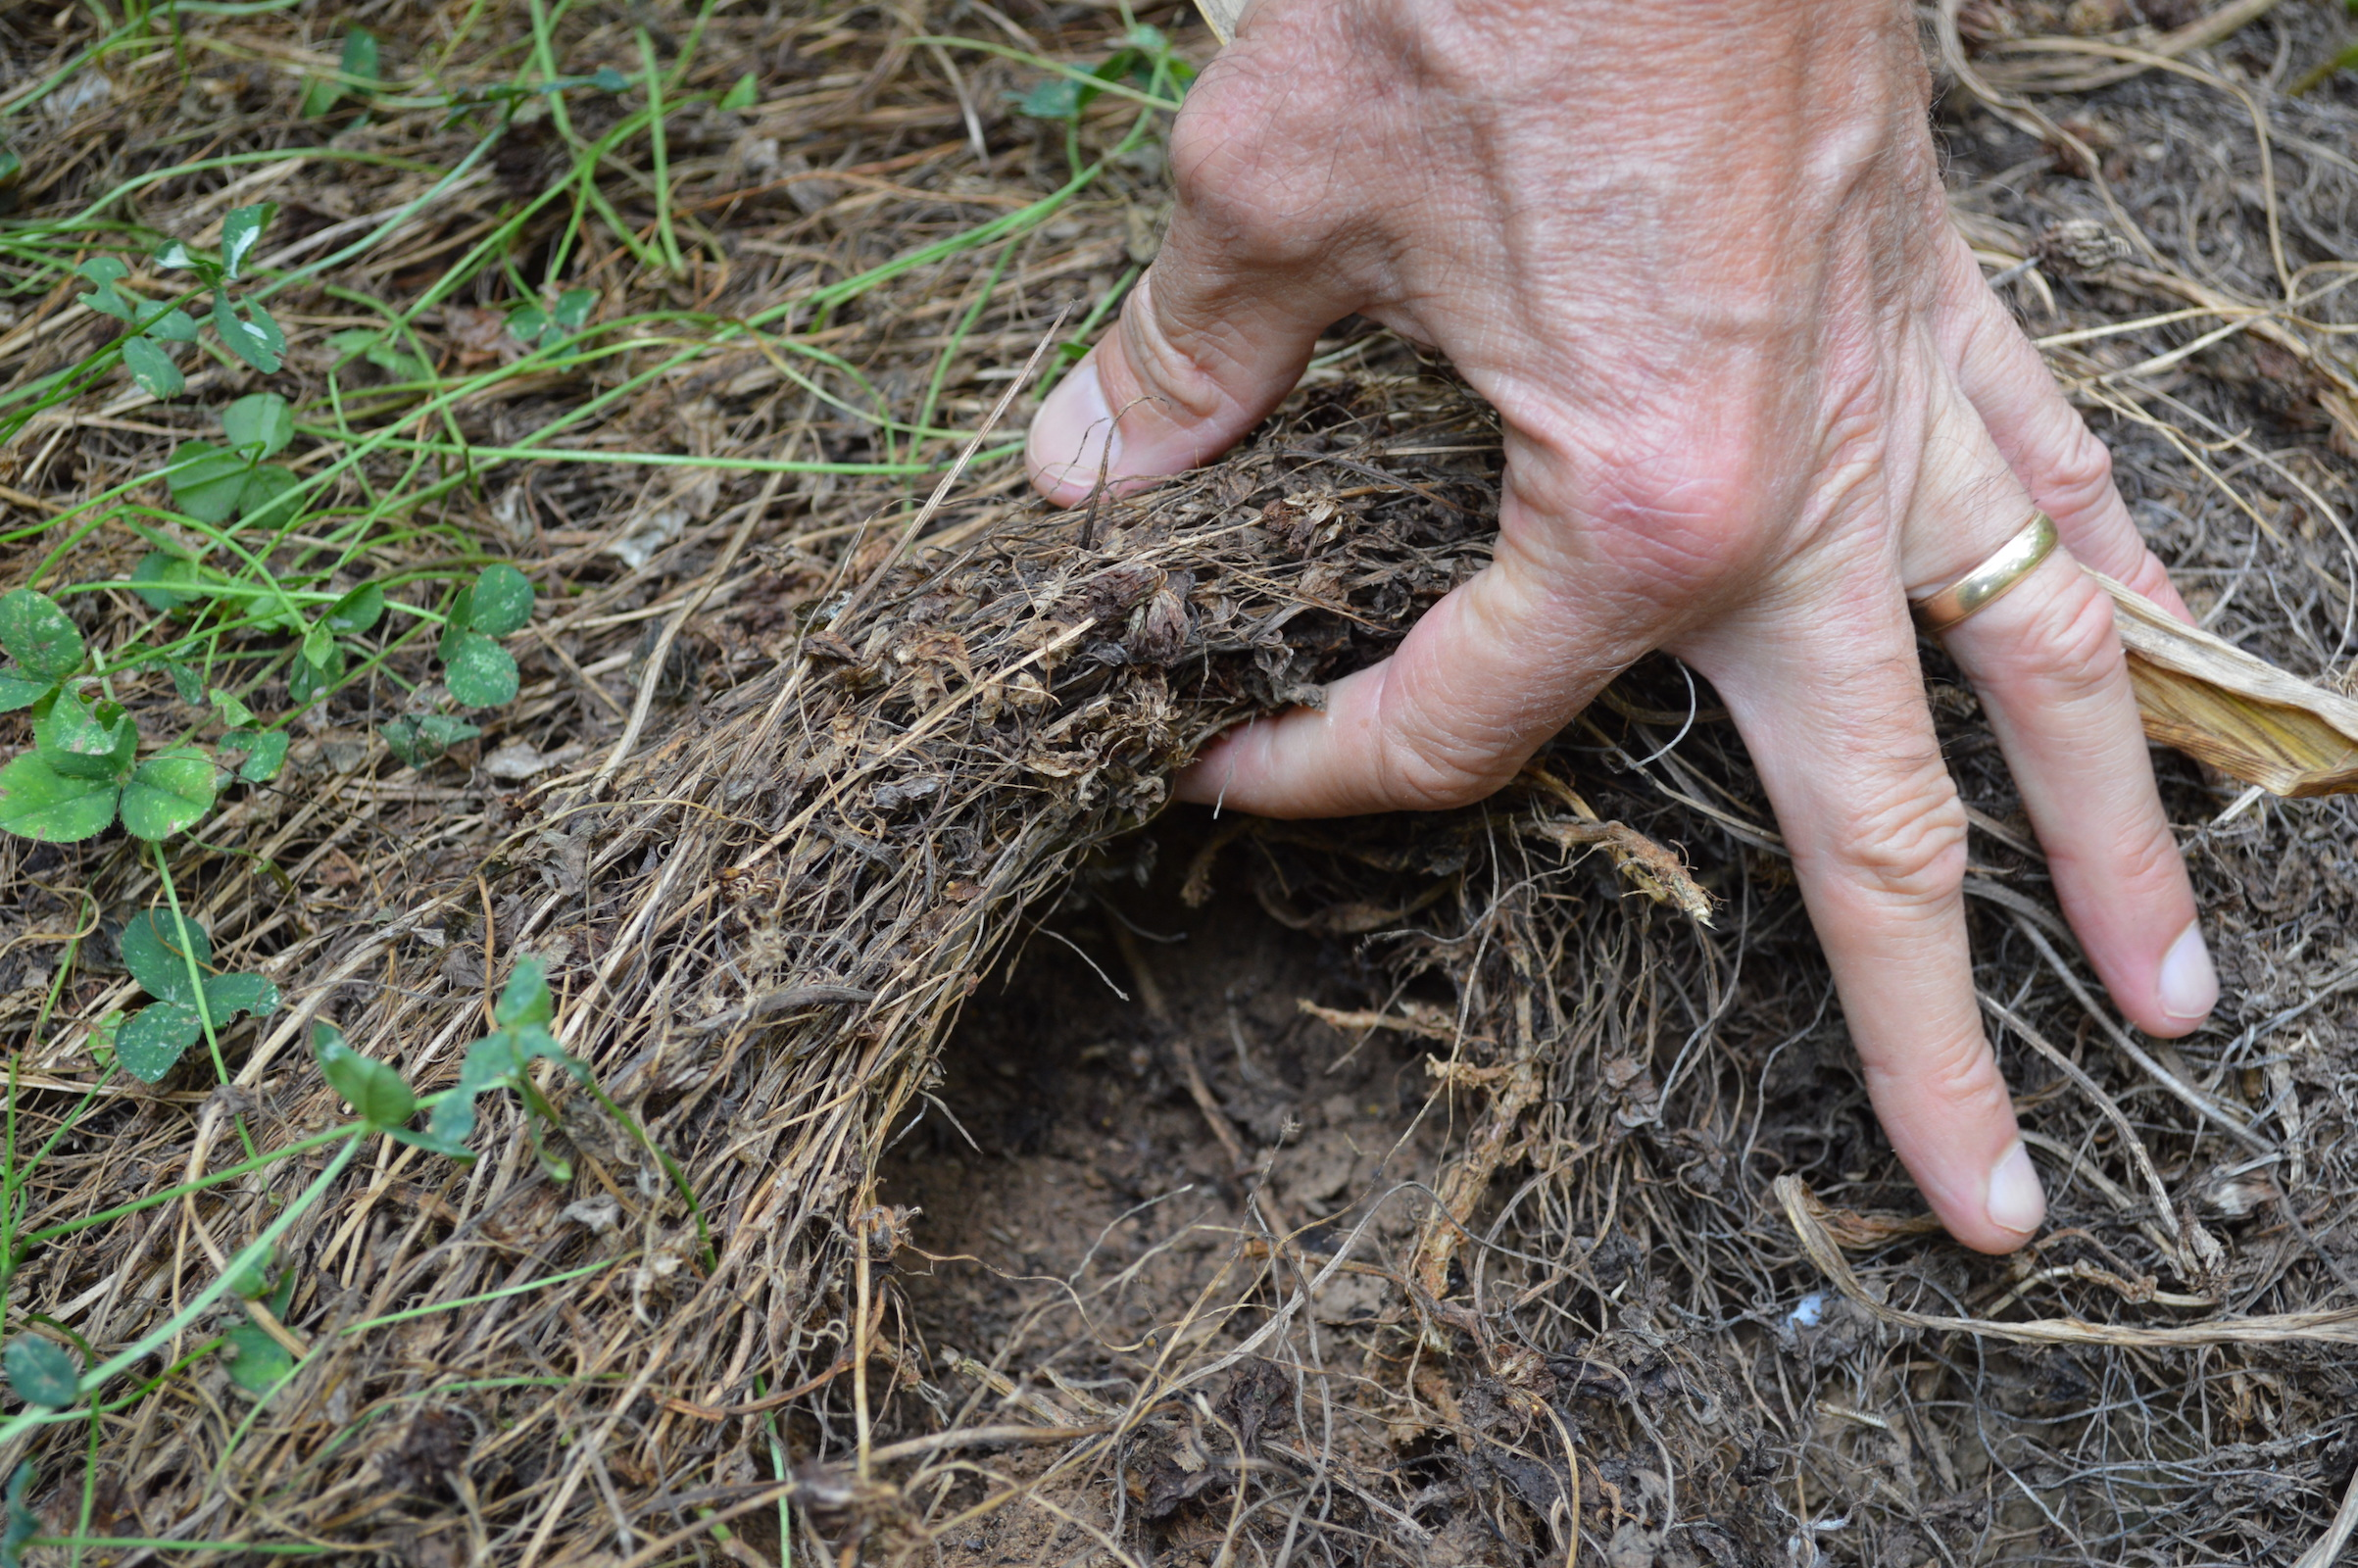 A new study reveals that living mulch is a crop that serves as a ground cover and provides many benefits to soil and gardens.